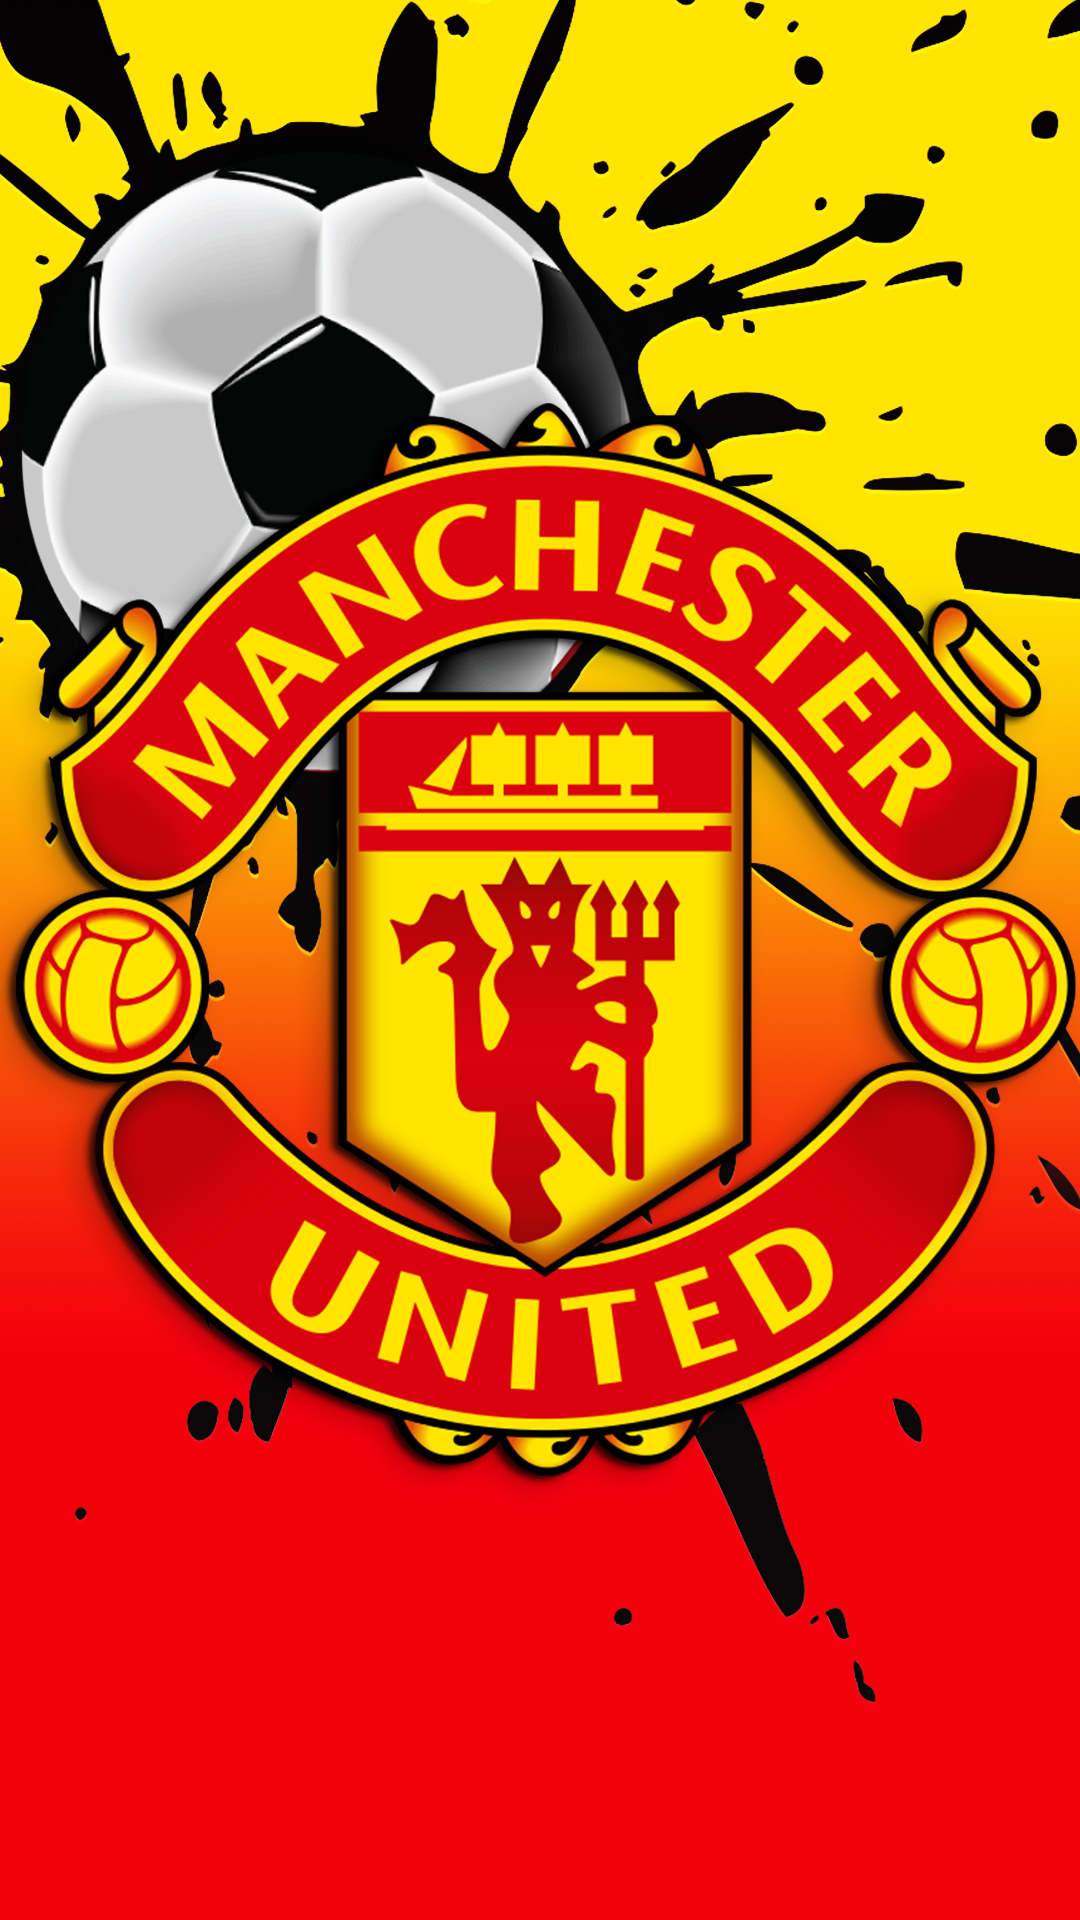 Download Our HD Manchester United Fc Wallpaper For Android ...